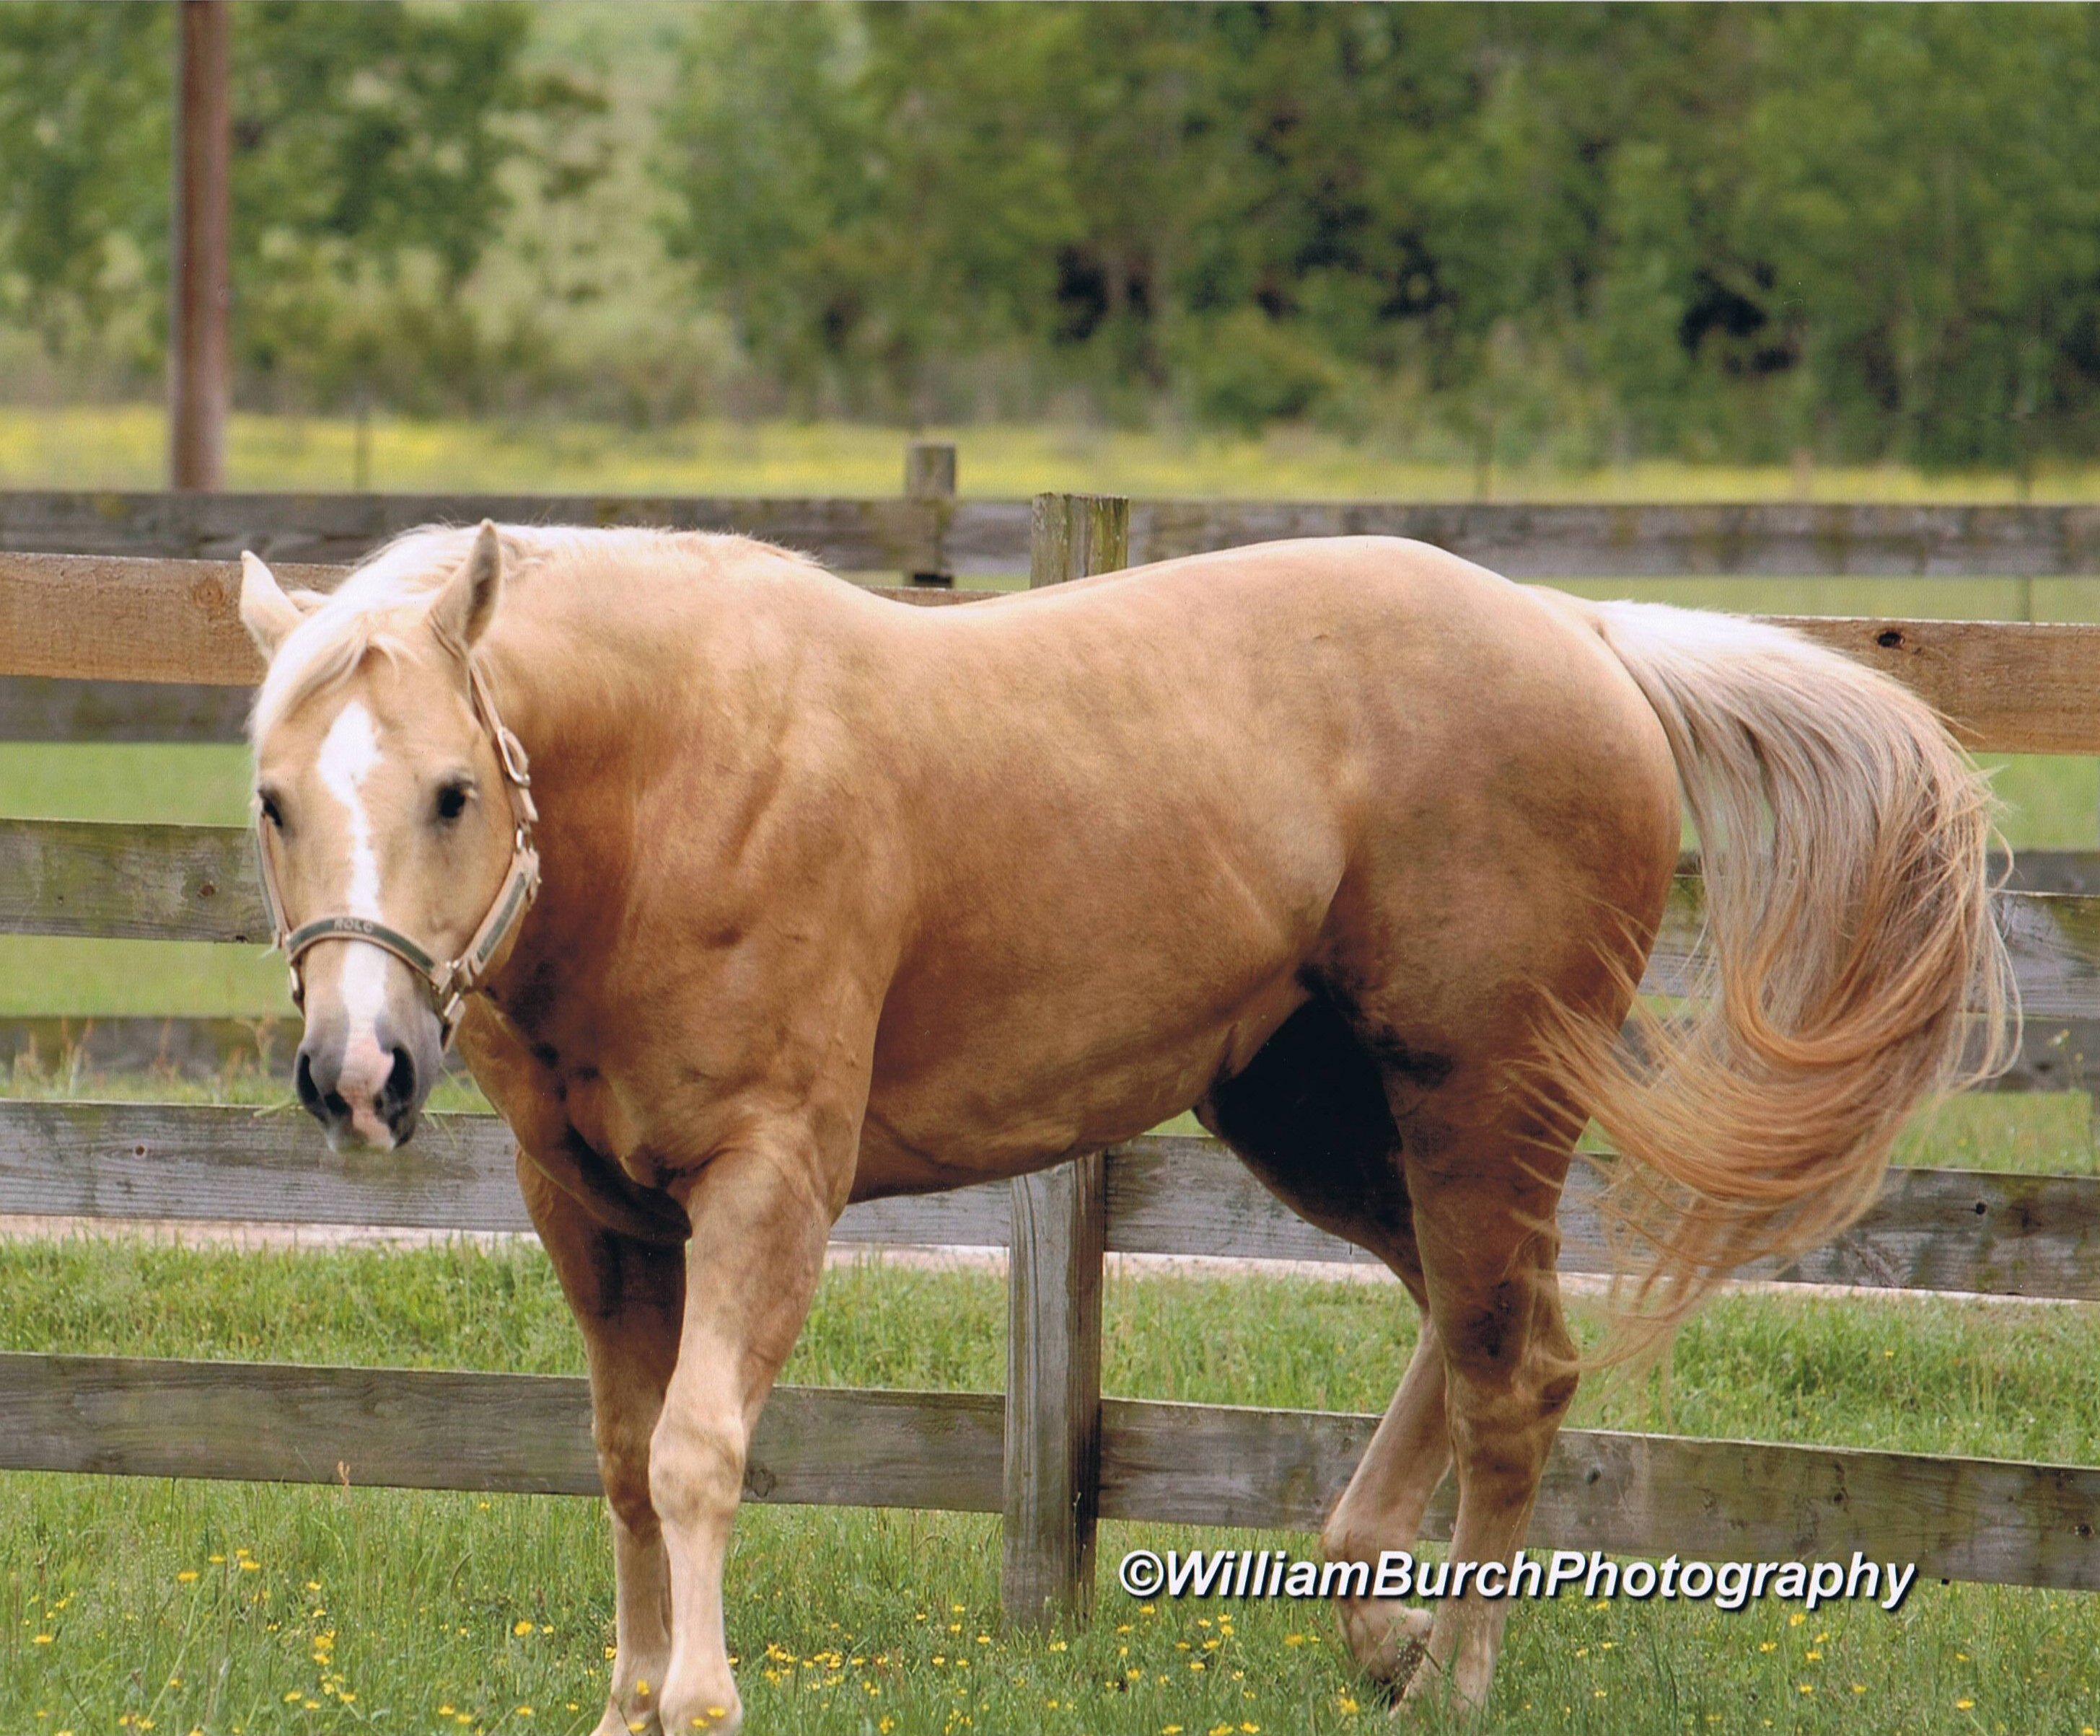 10 Facts About The American Quarter Horse You Probably